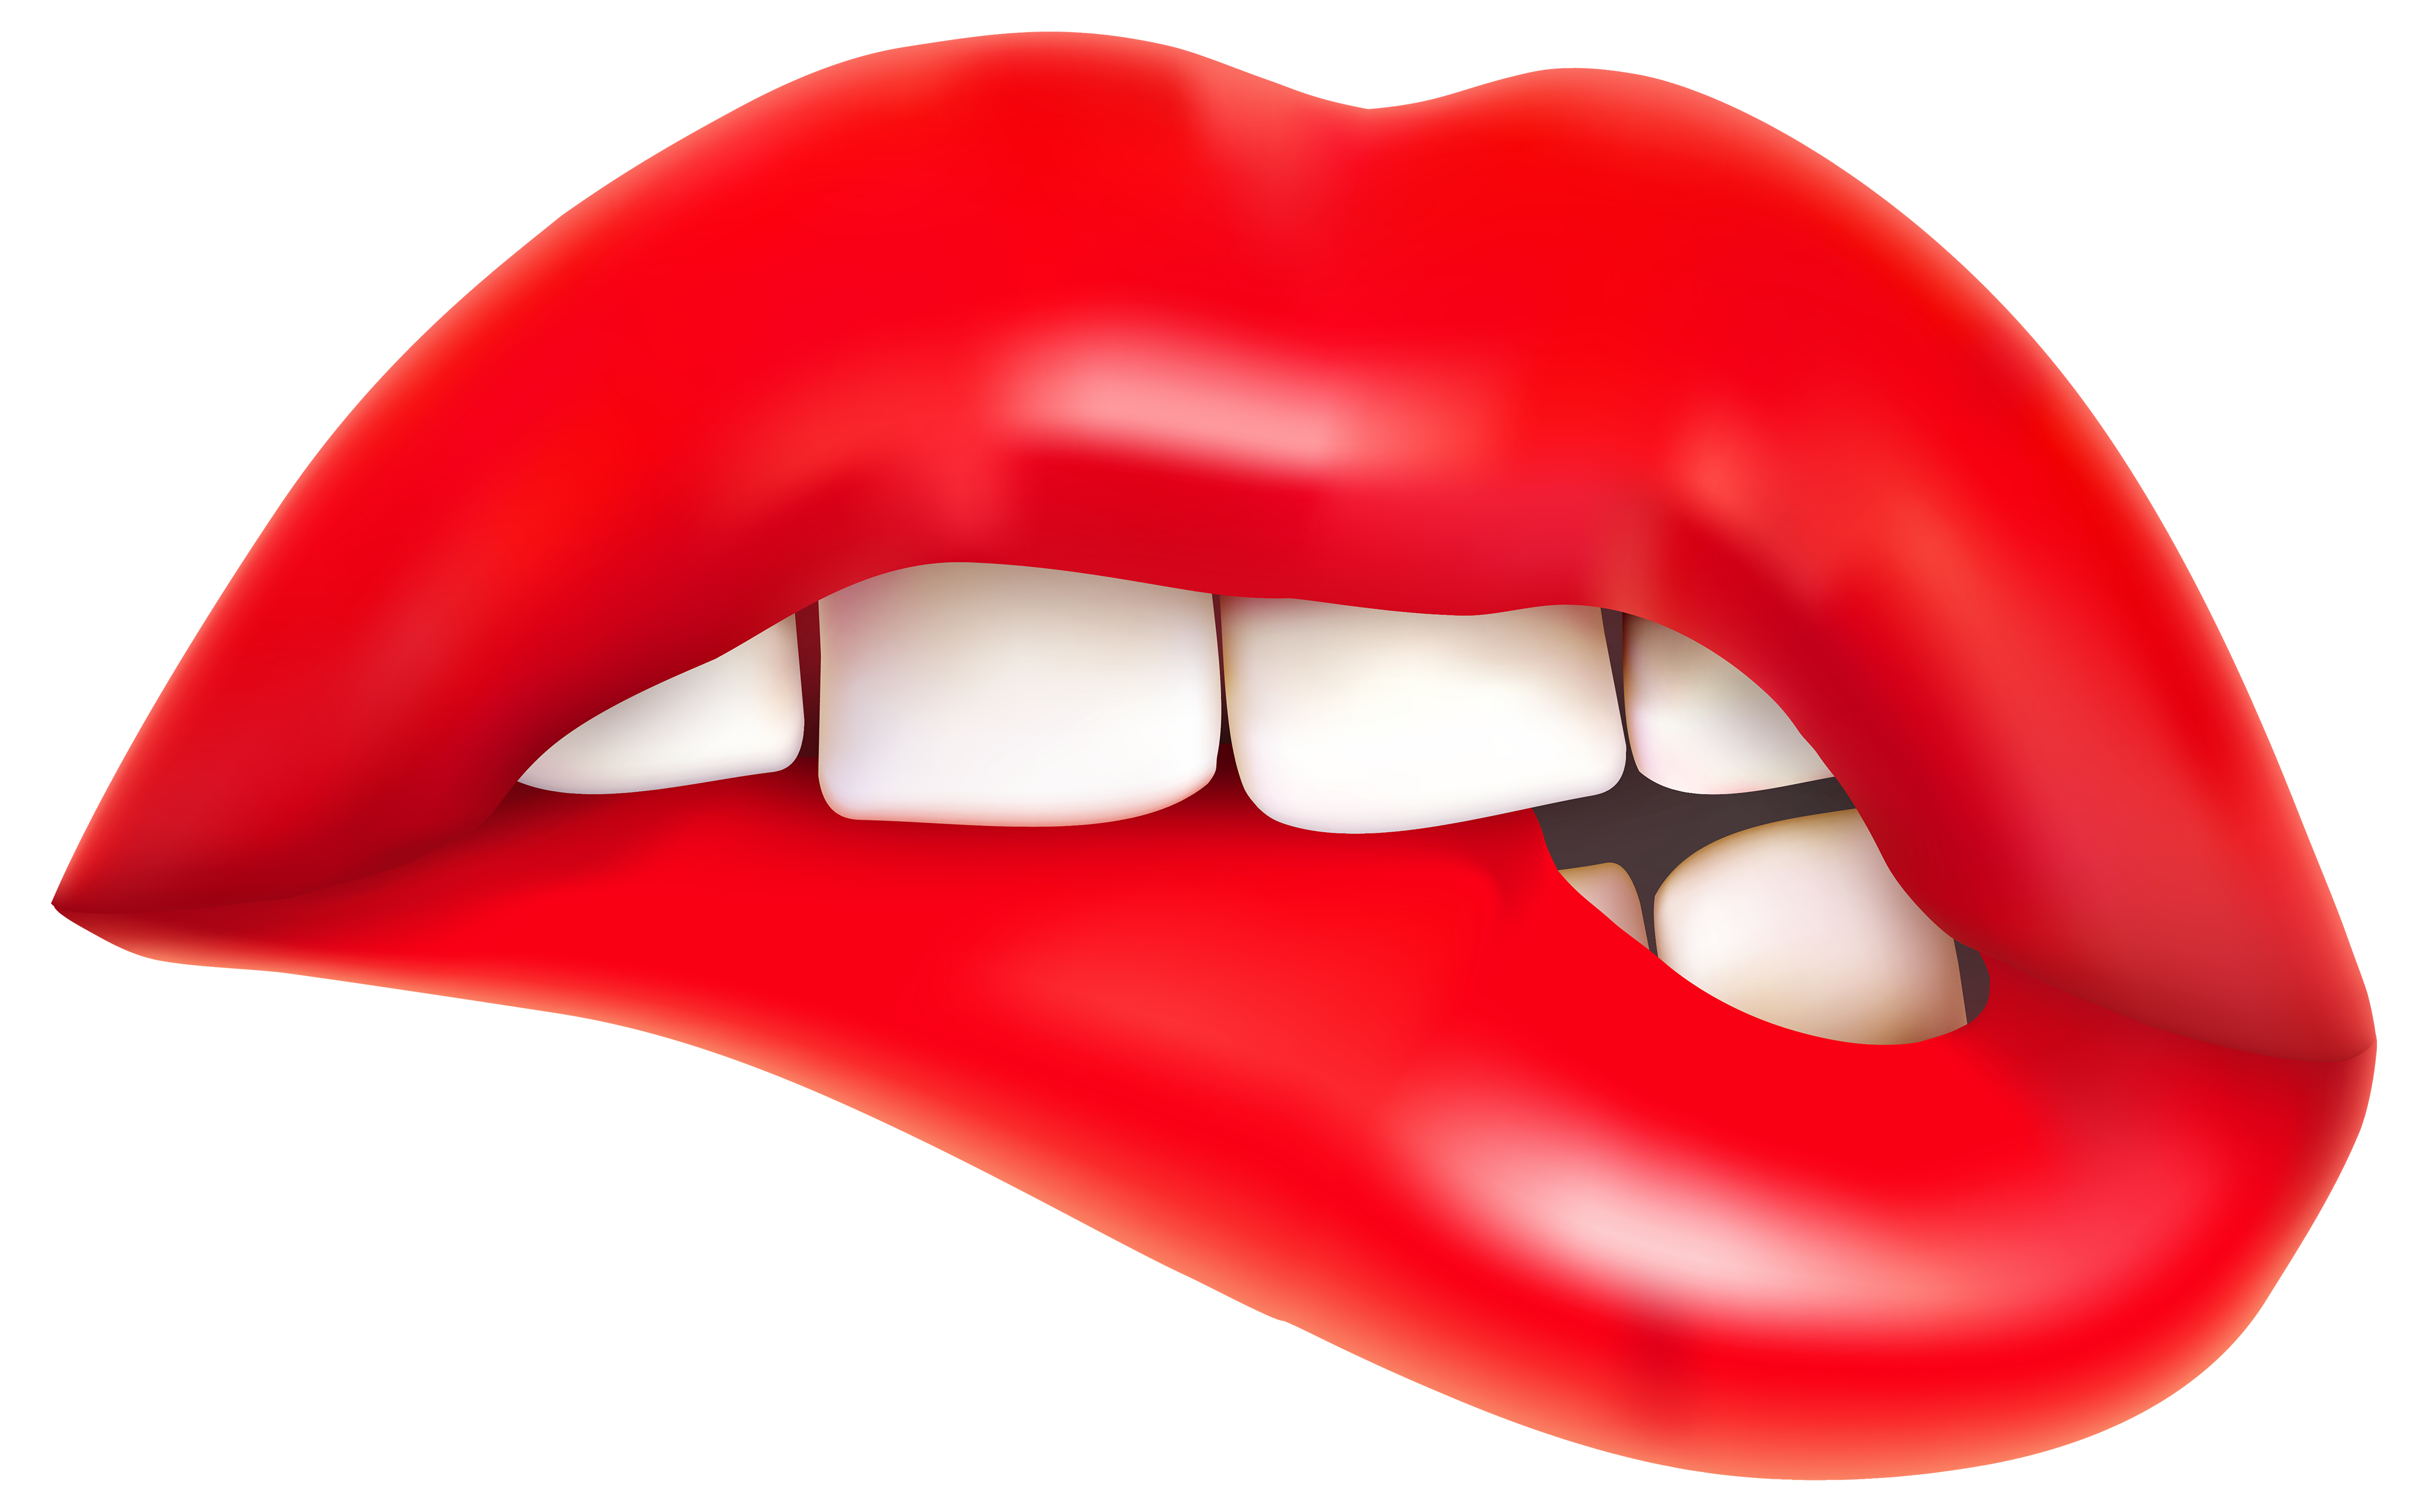 Shhh Lips PNG Transparent Shhh Lips.PNG Images. | PlusPNG